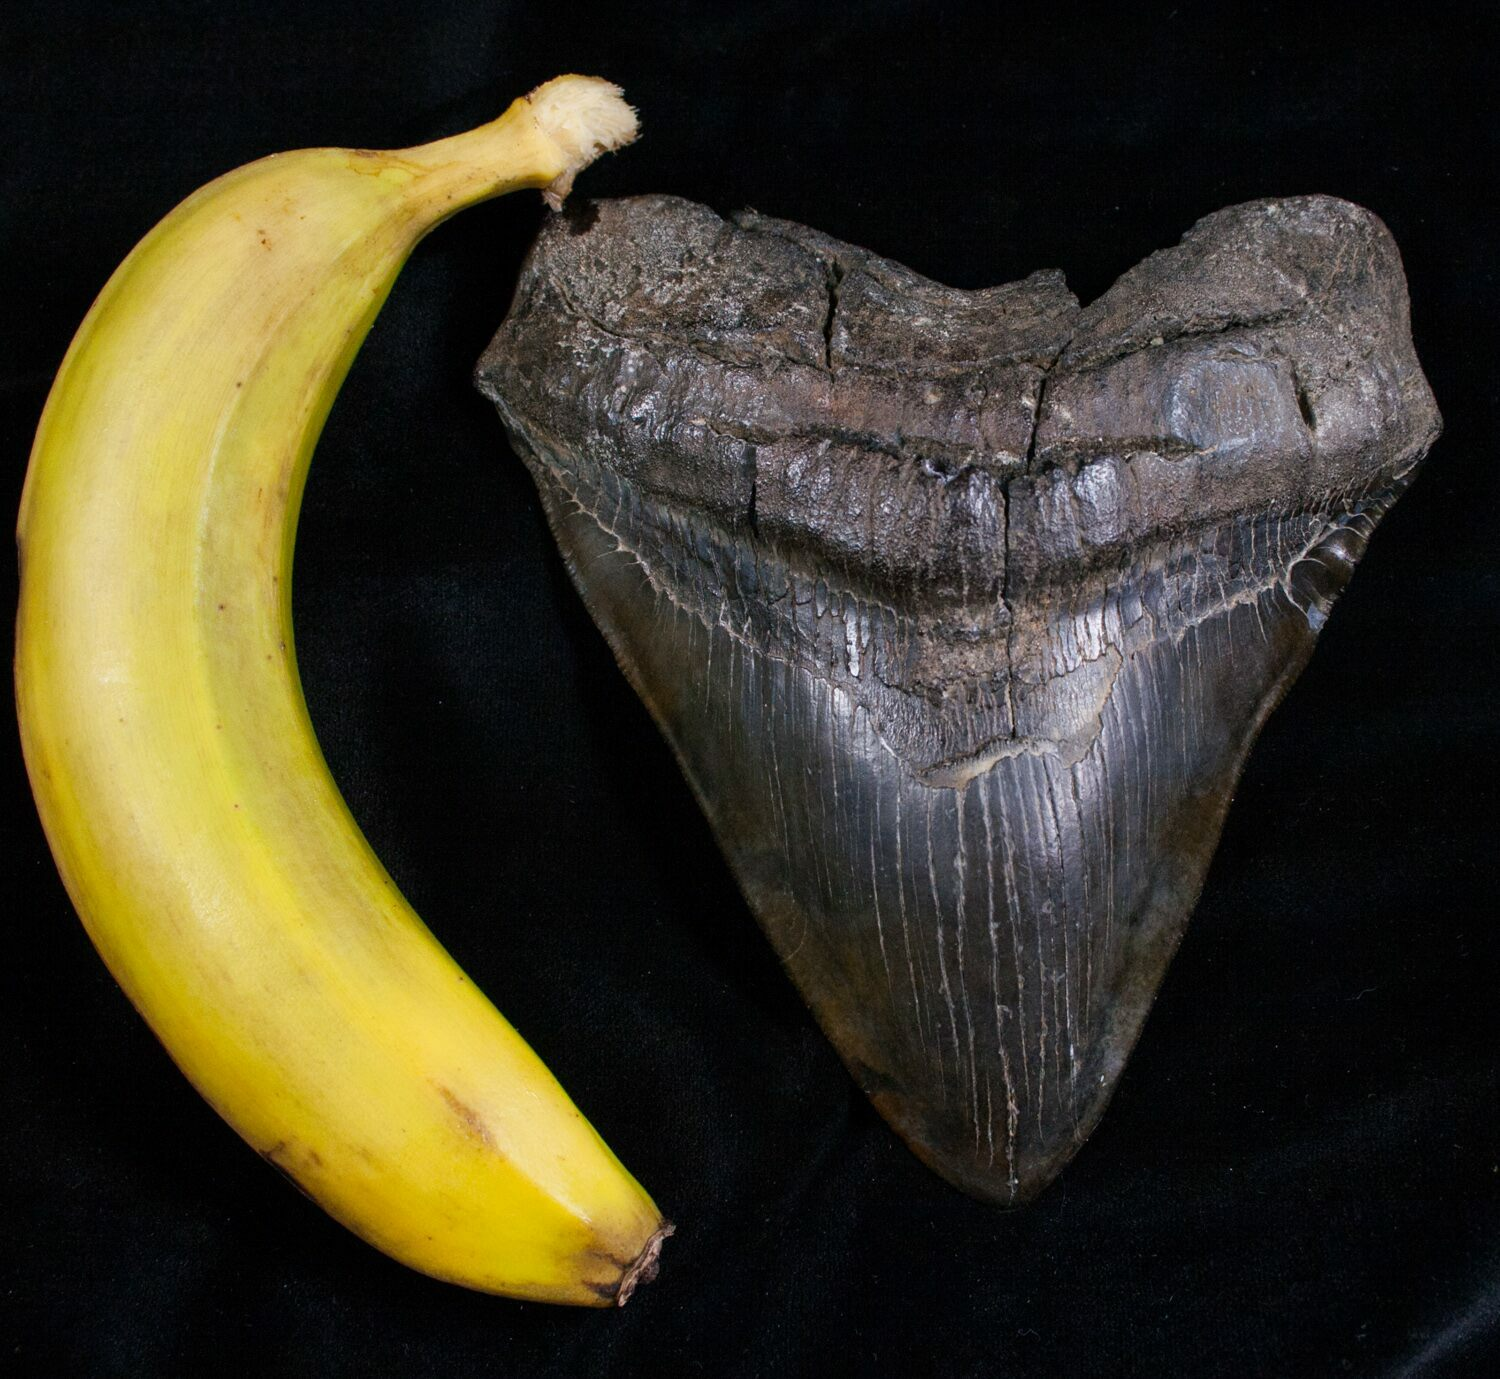 Huge Megalodon Tooth Compared to Banana